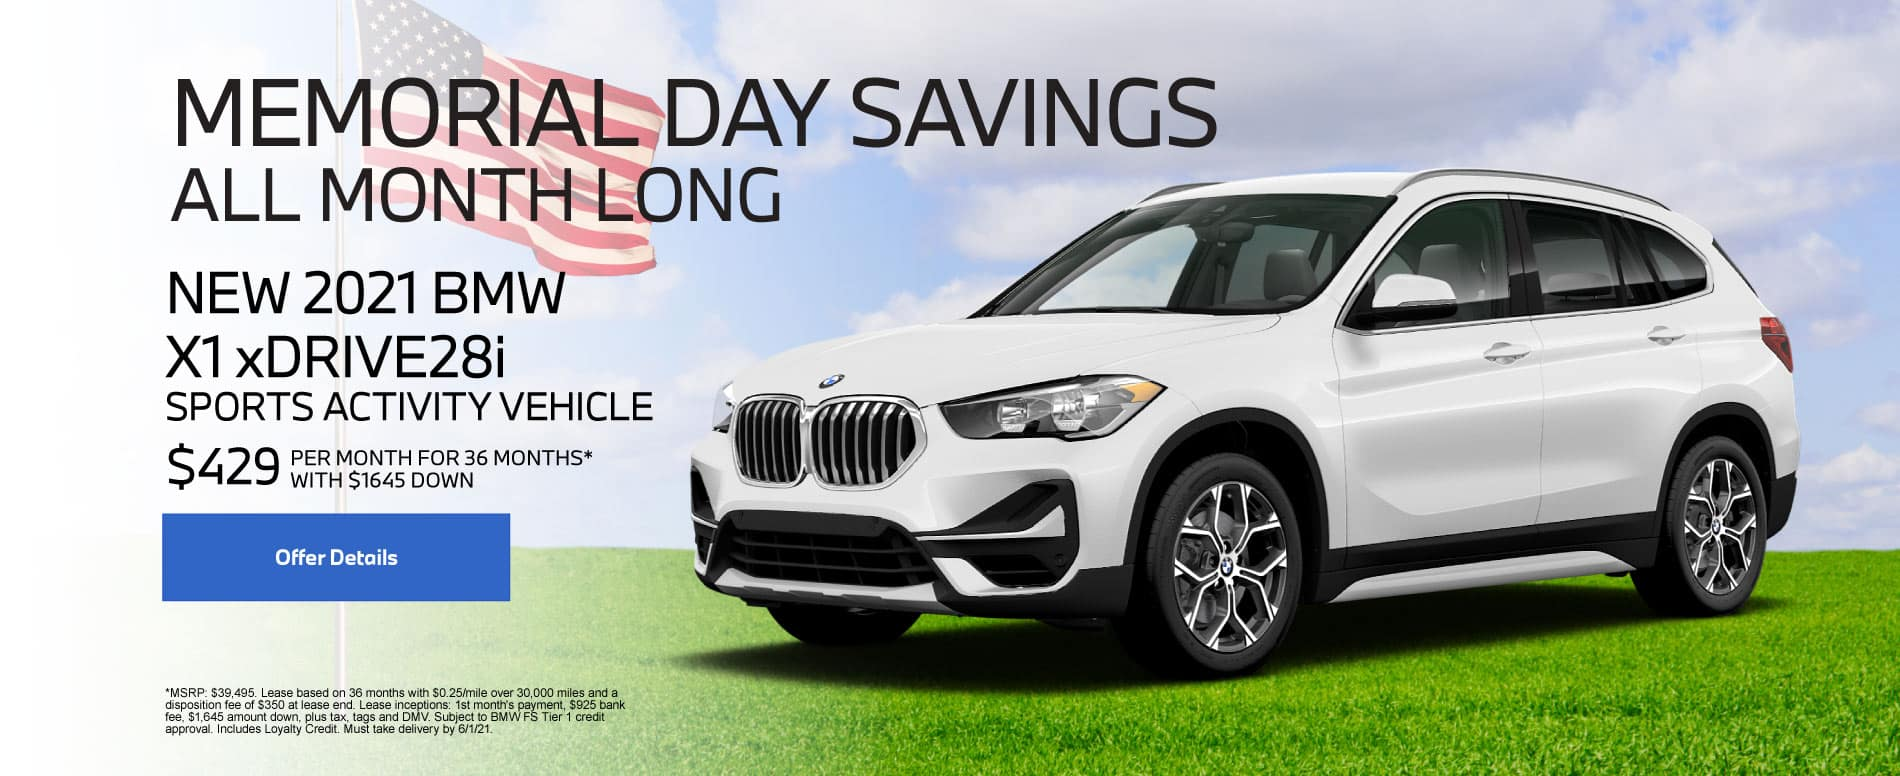 New 2021 BMW X1 $429 per month - Click for Details